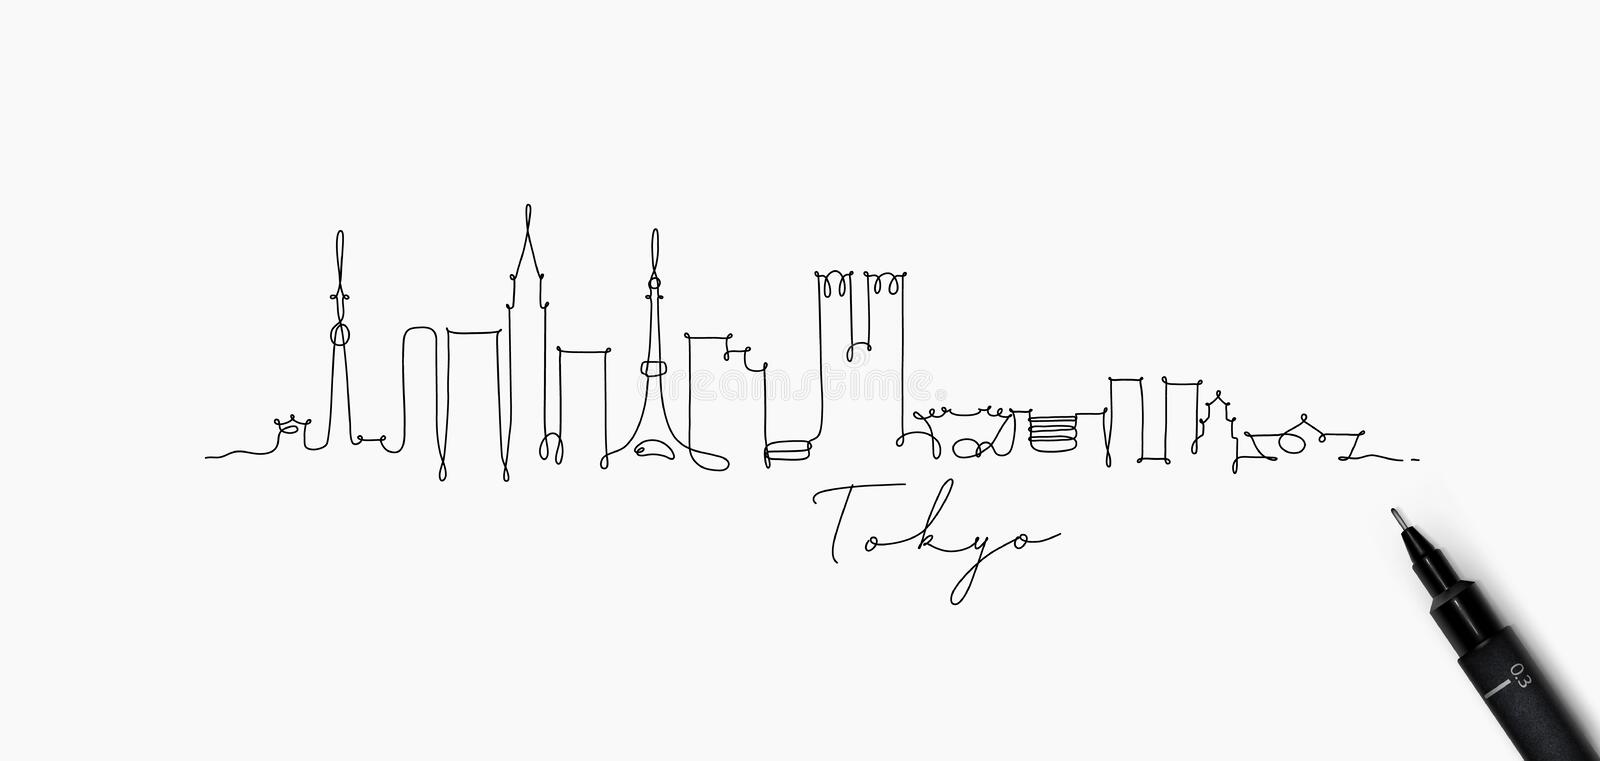 Pen line silhouette tokyo. City silhouette tokyo in pen line style drawing with black lines on white background royalty free illustration